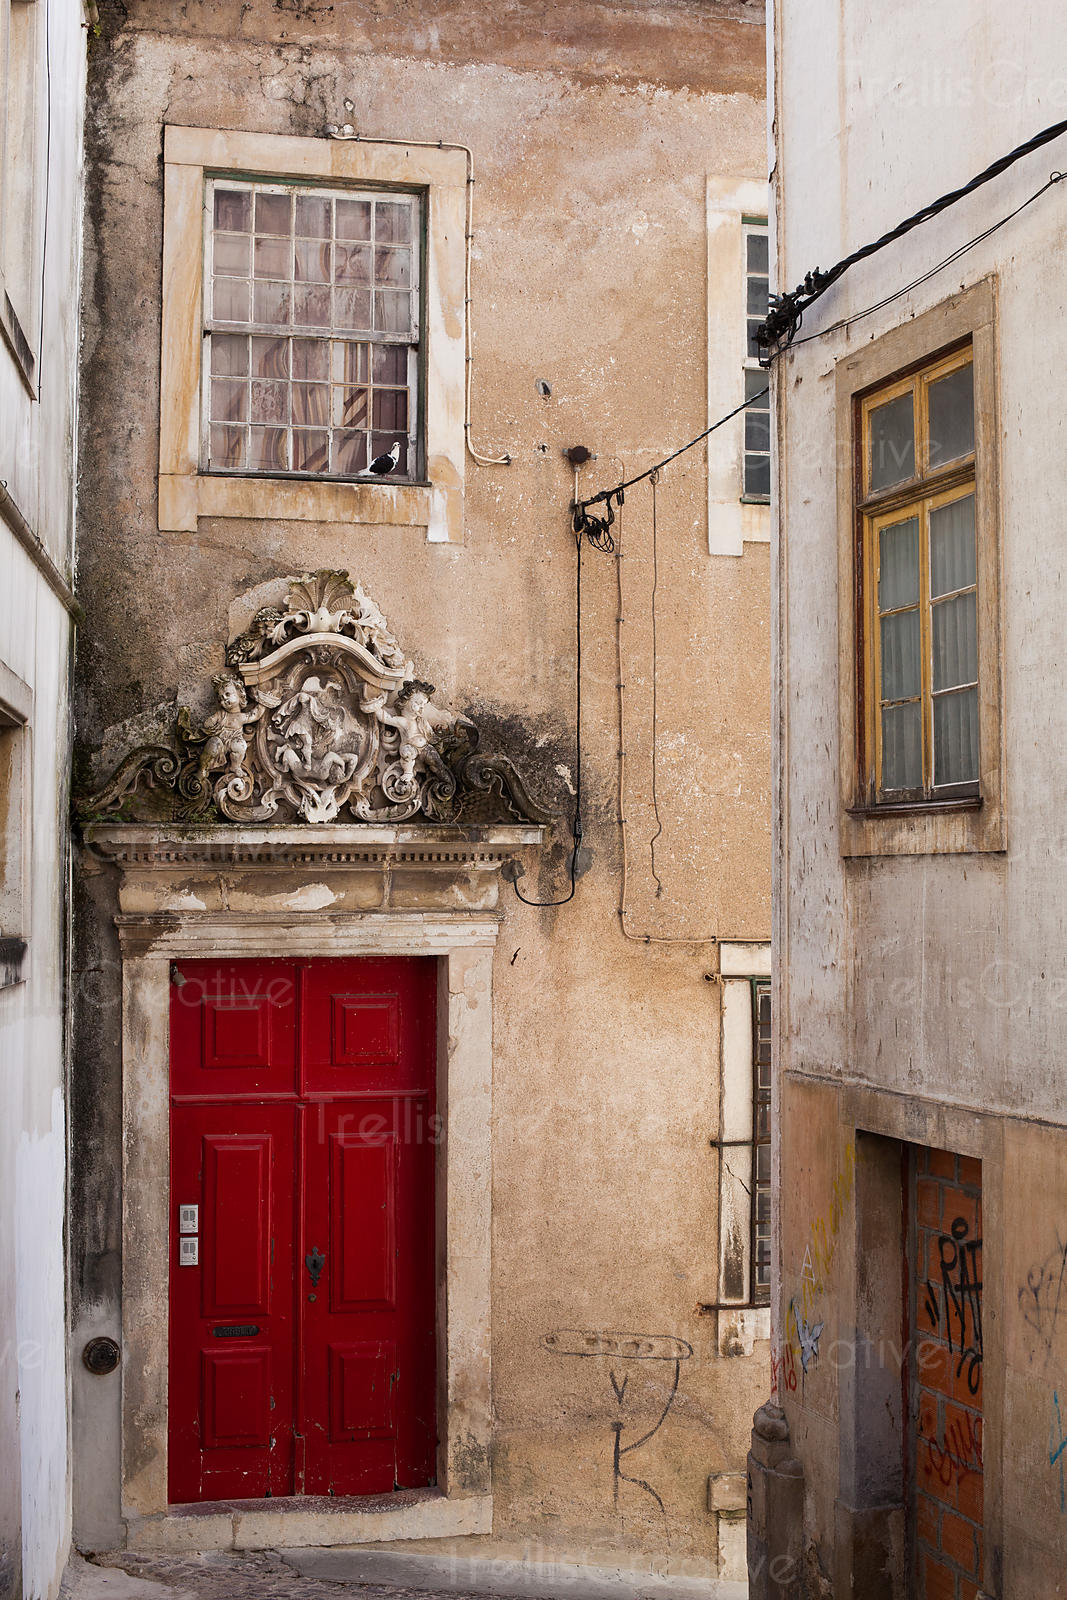 A bright red door pops in an old Portuguese alley way.